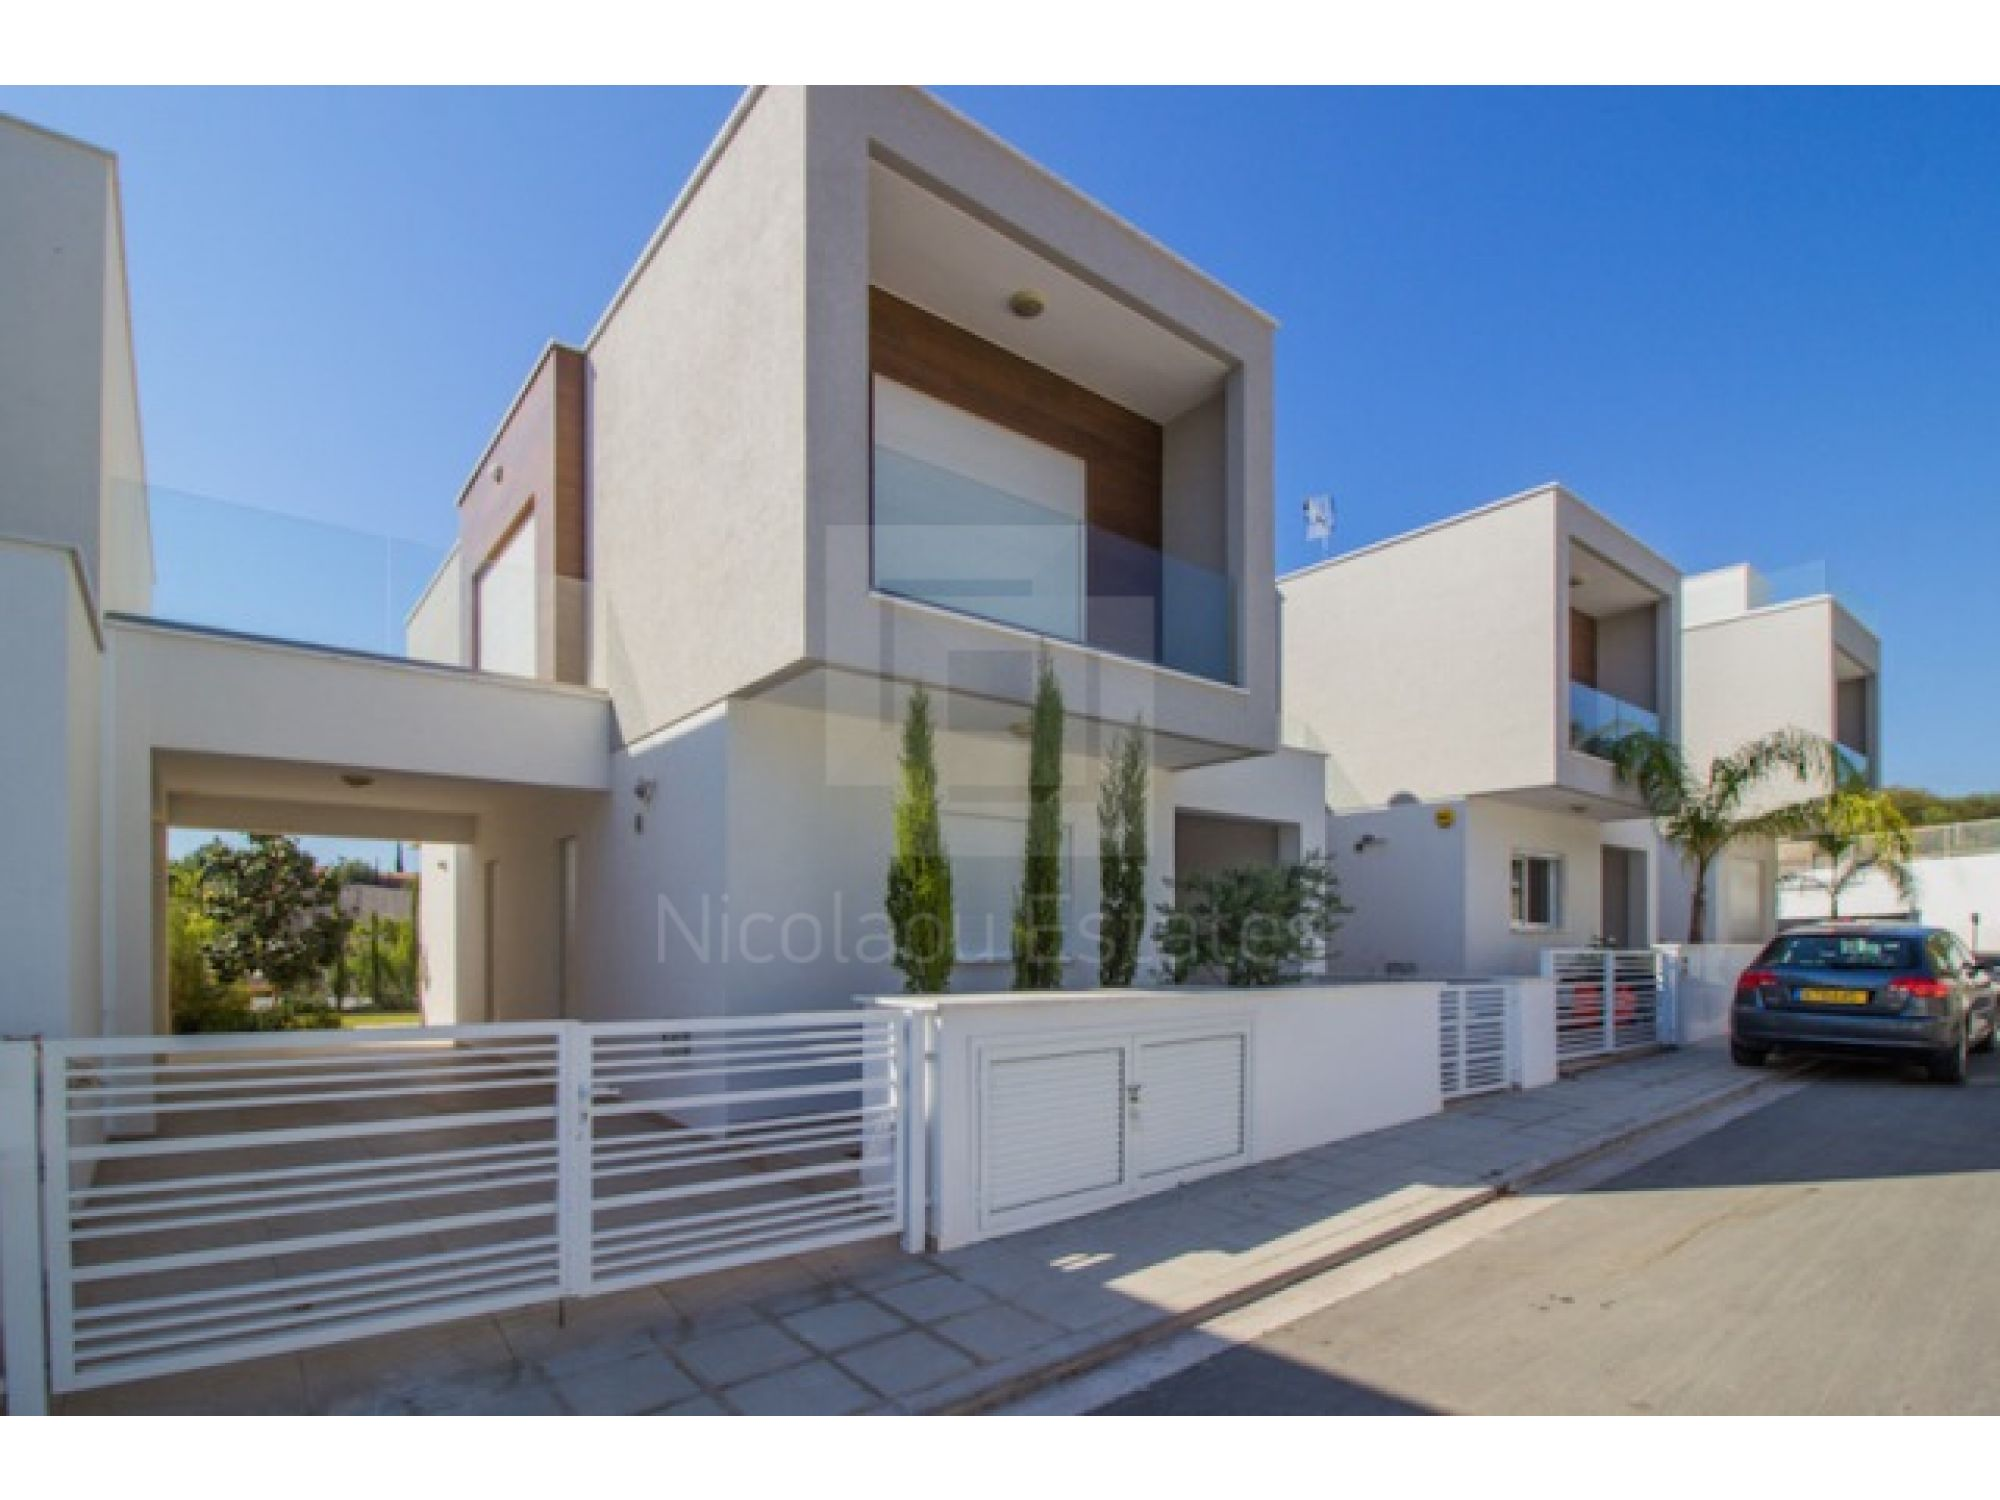 New three bedroom modern house for sale in ypsonas area of limassol